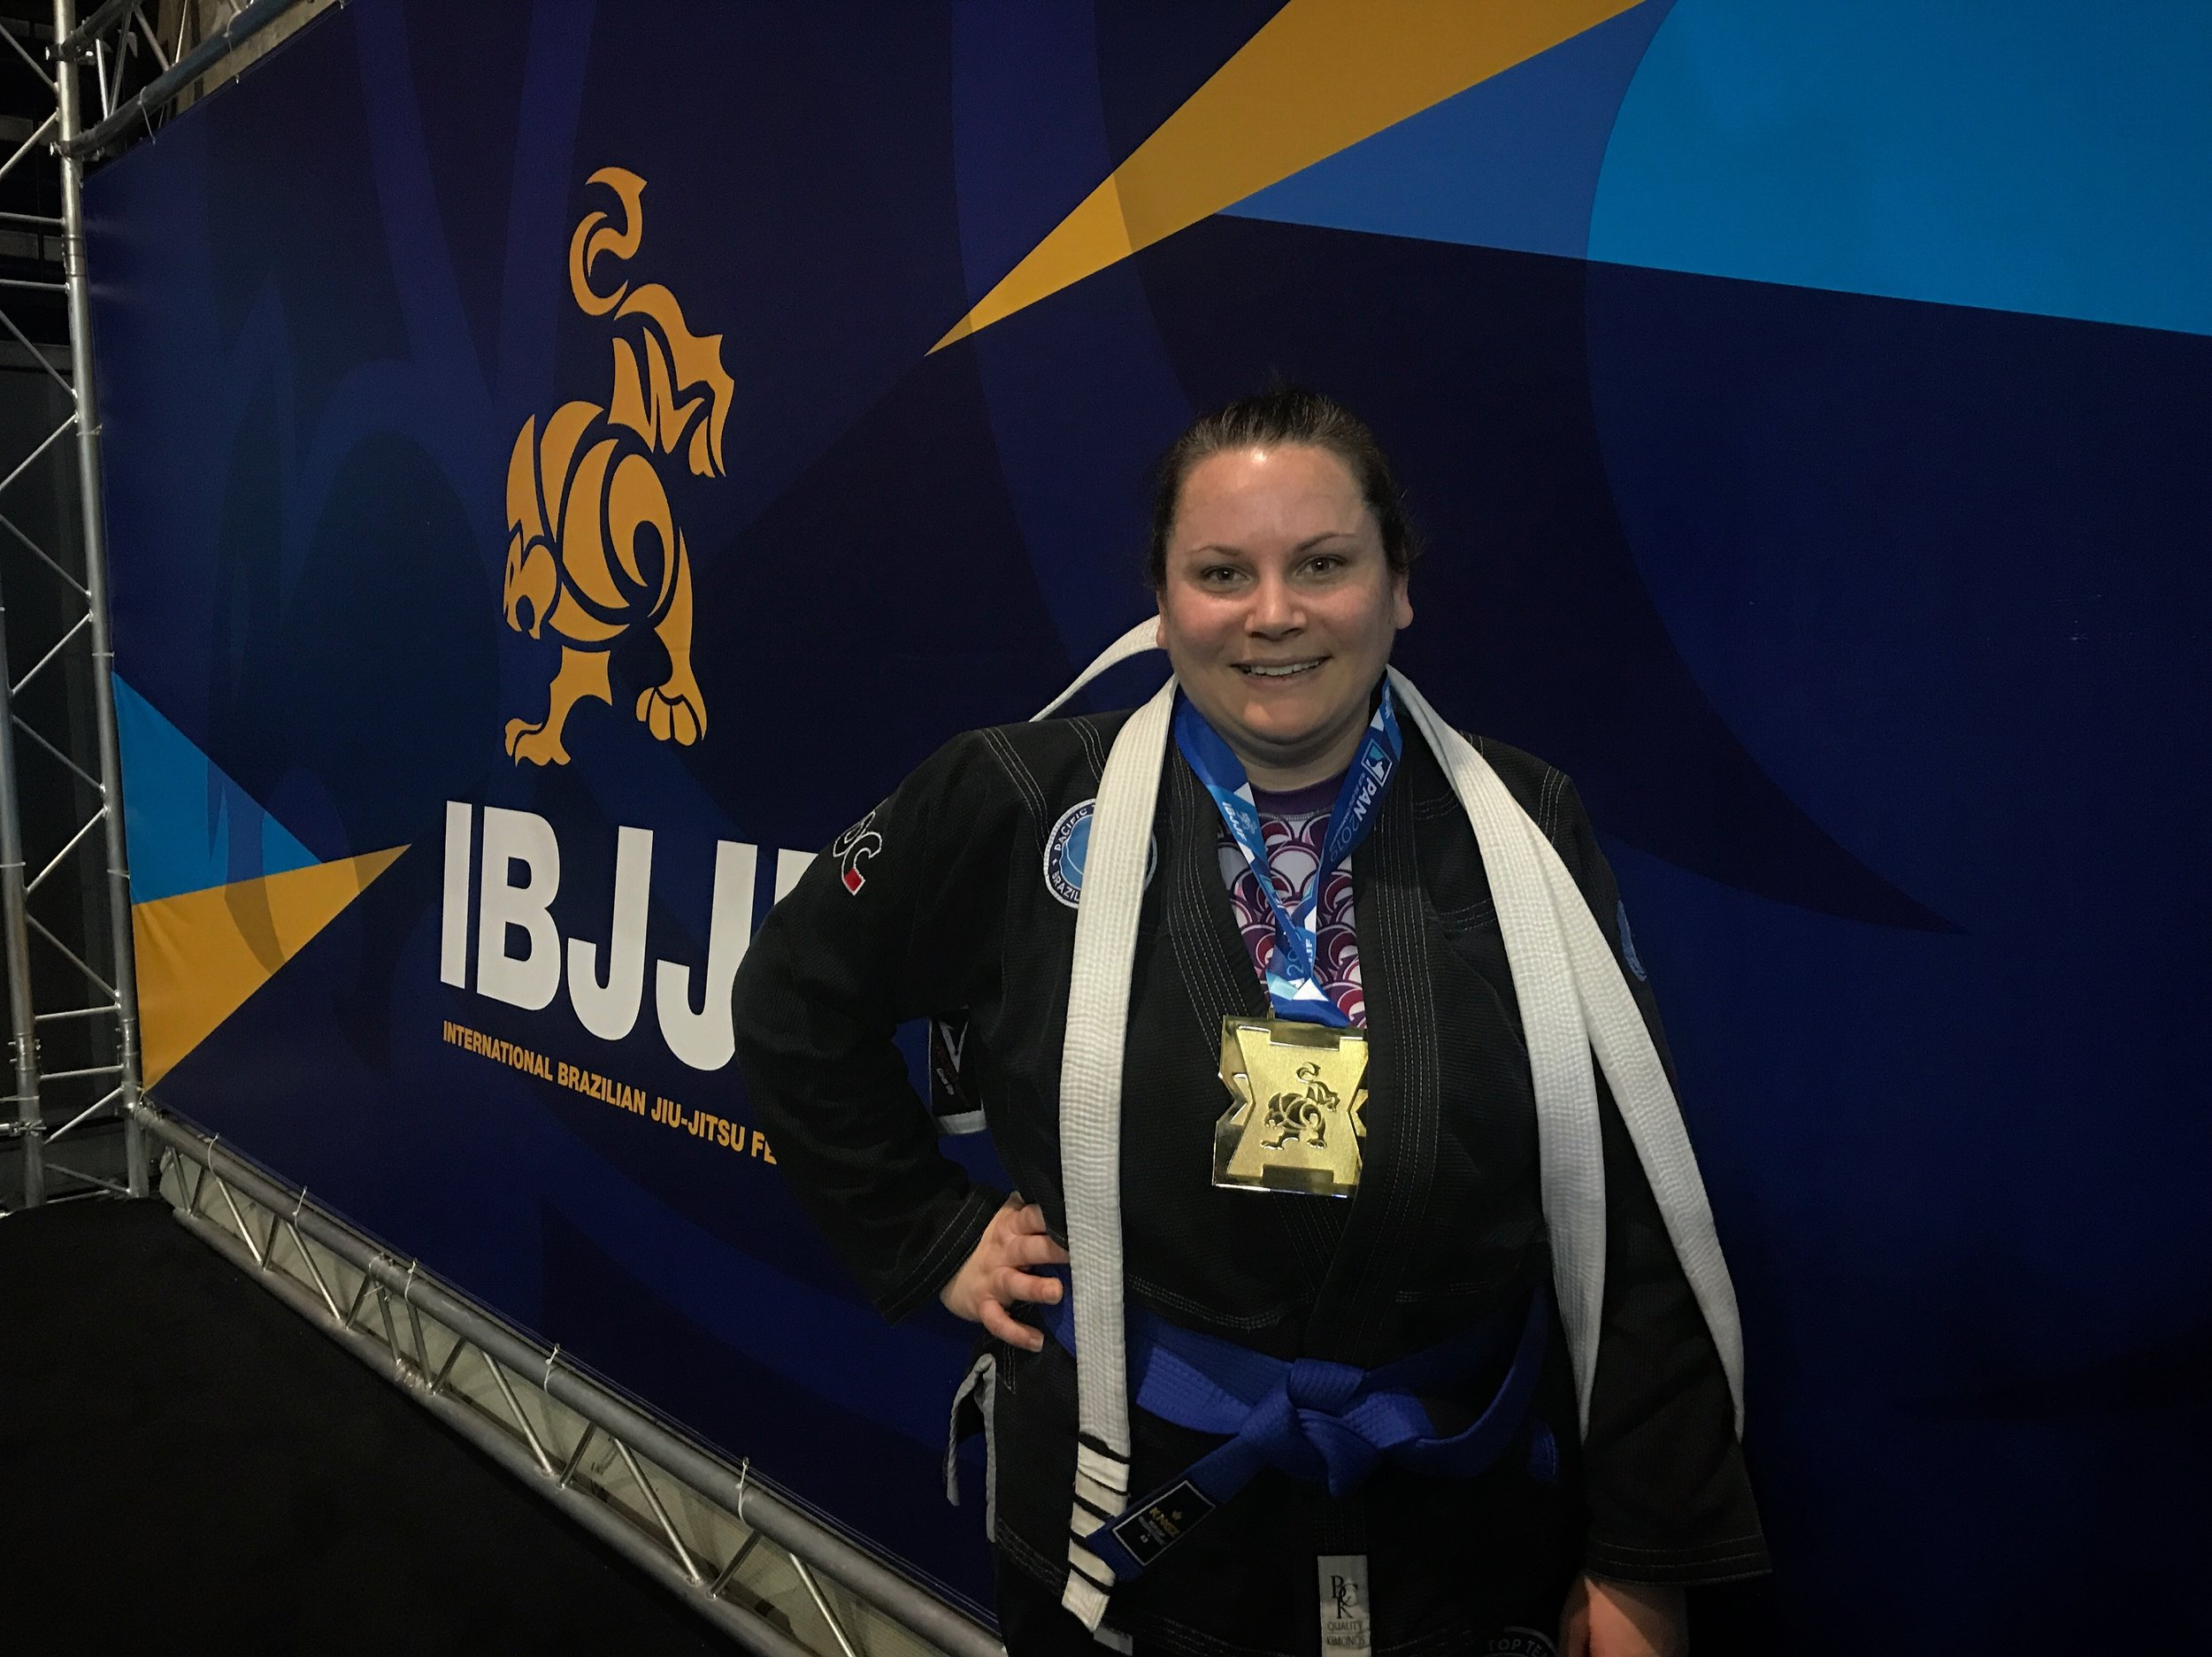 Rachel Forero Gold in the division and brand new blue belt!